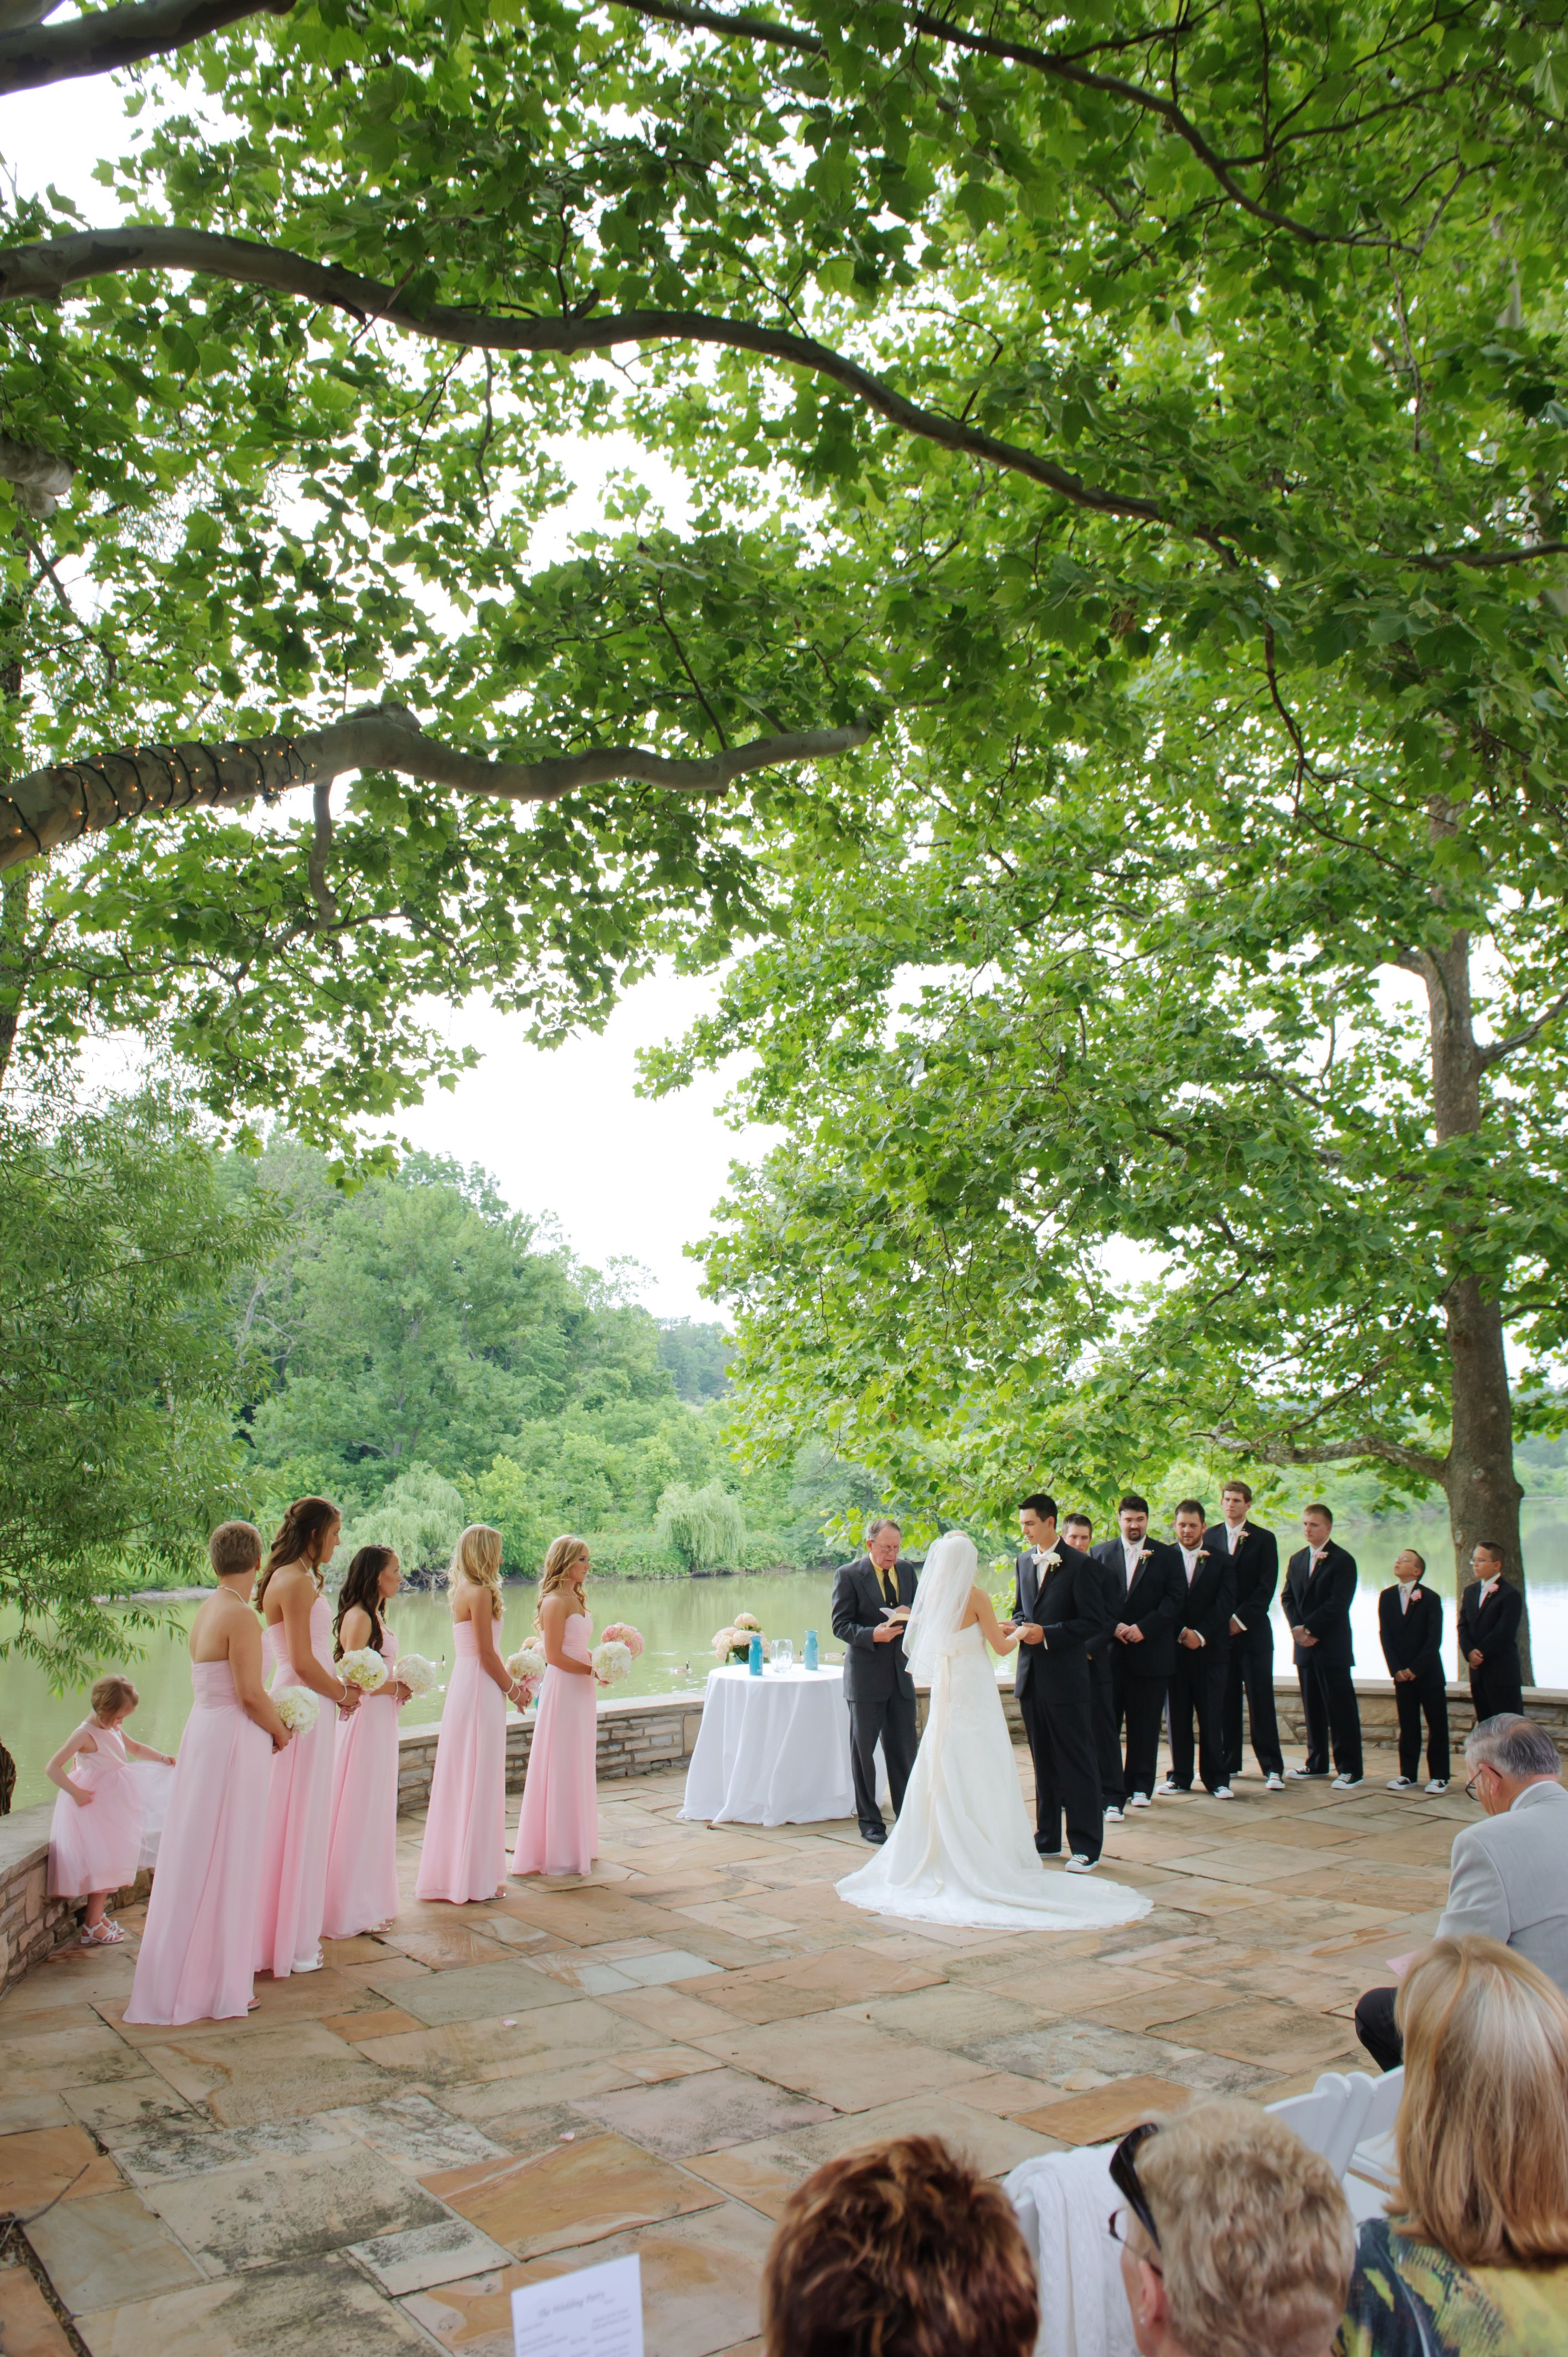 Darby House Outdoor Wedding // Galloway, OH (With images